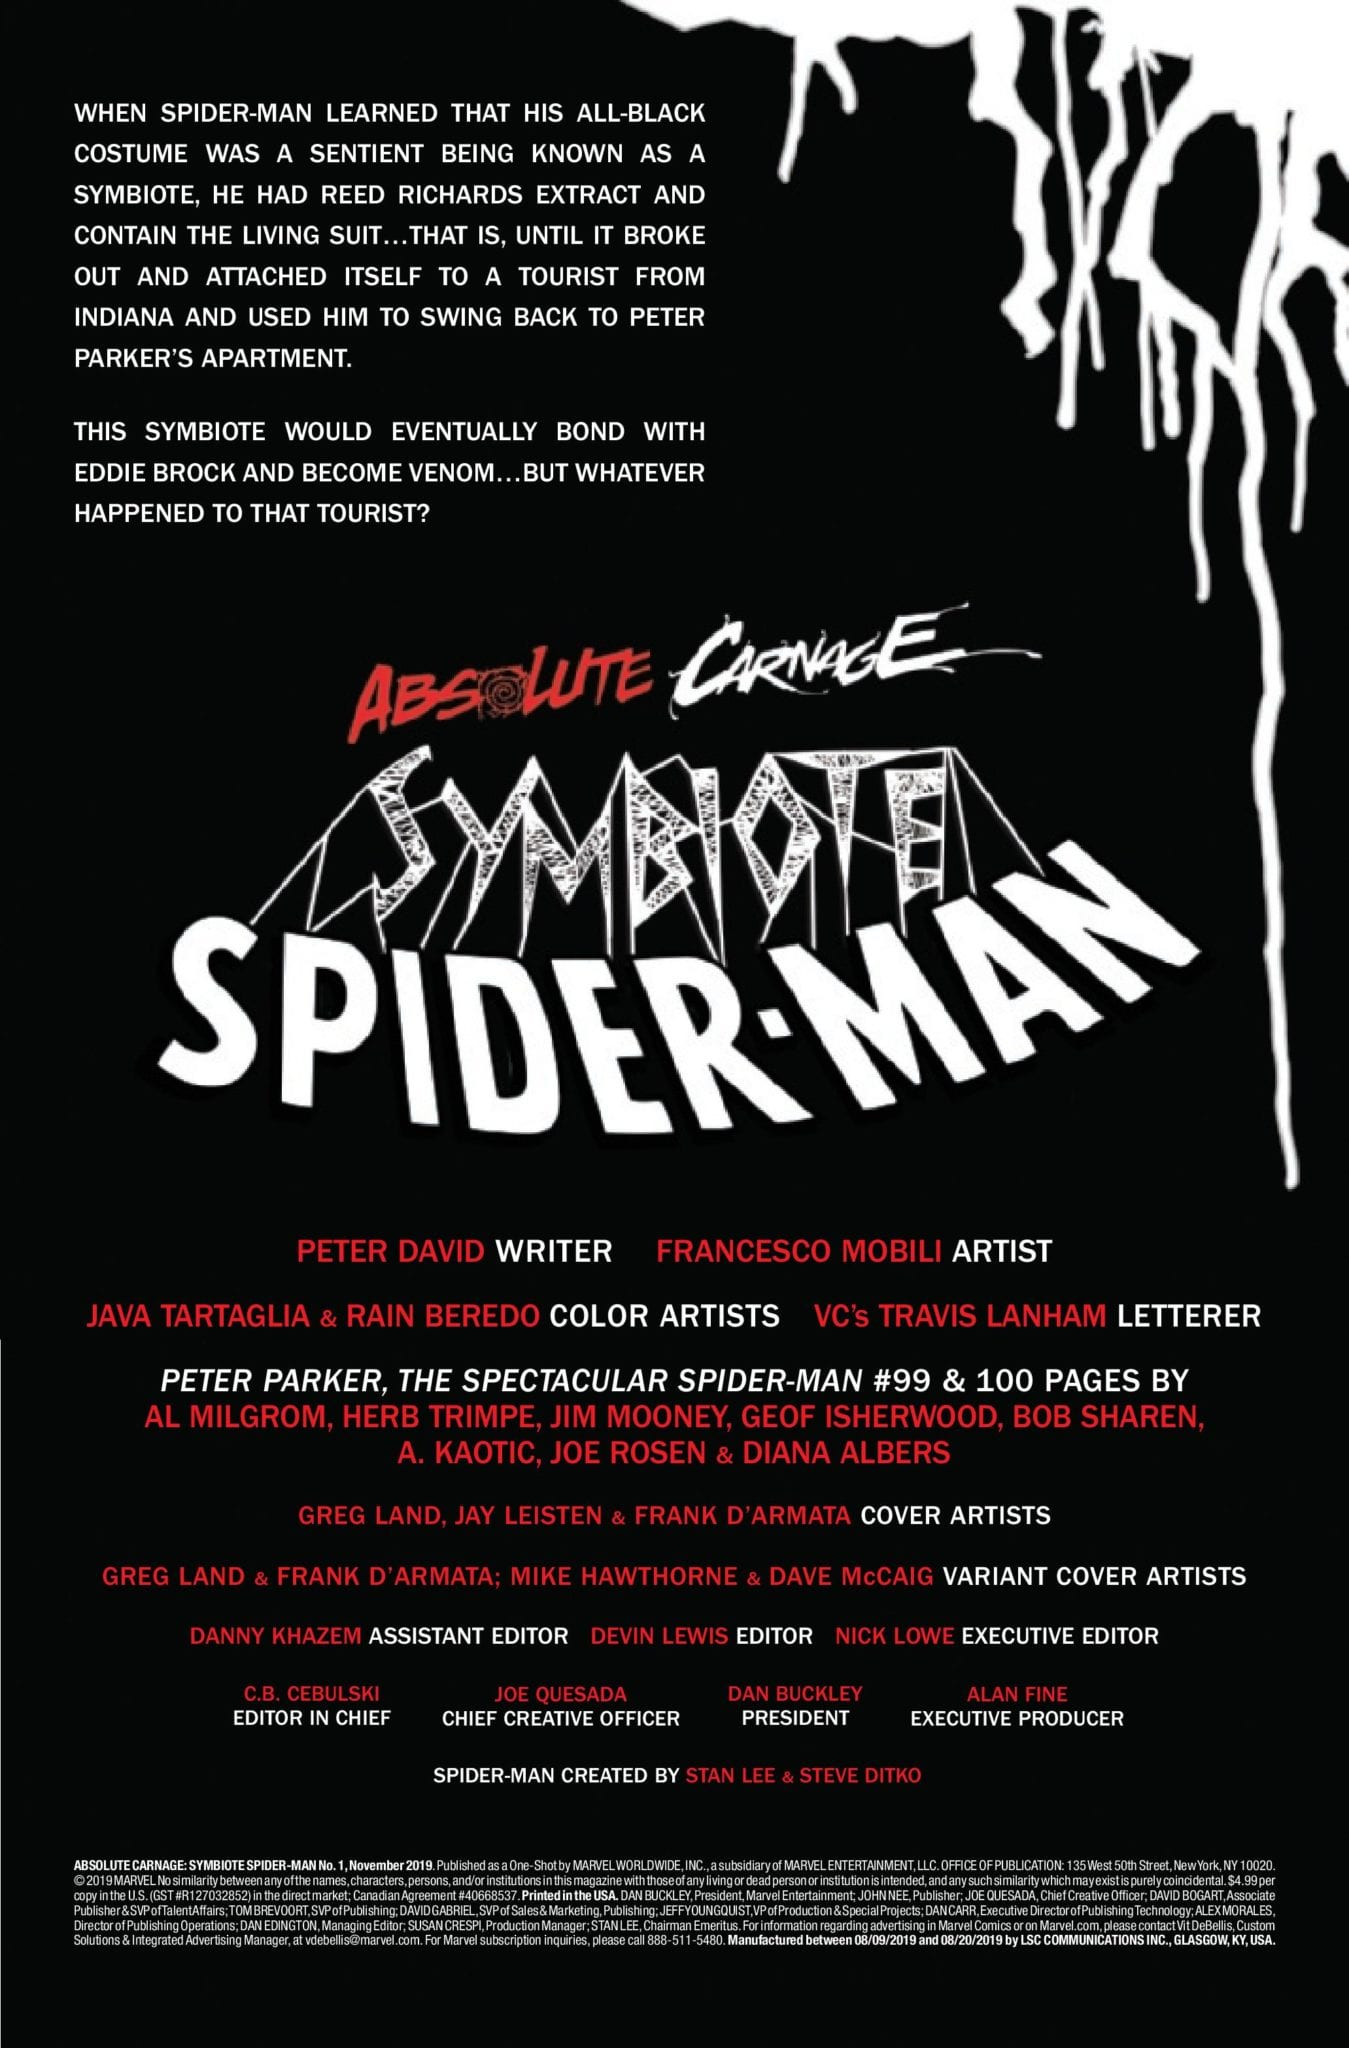 Exclusive Preview: ABSOLUTE CARNAGE: SYMBIOTE SPIDER-MAN #1 - Who Is Leonard Elkhart? 2